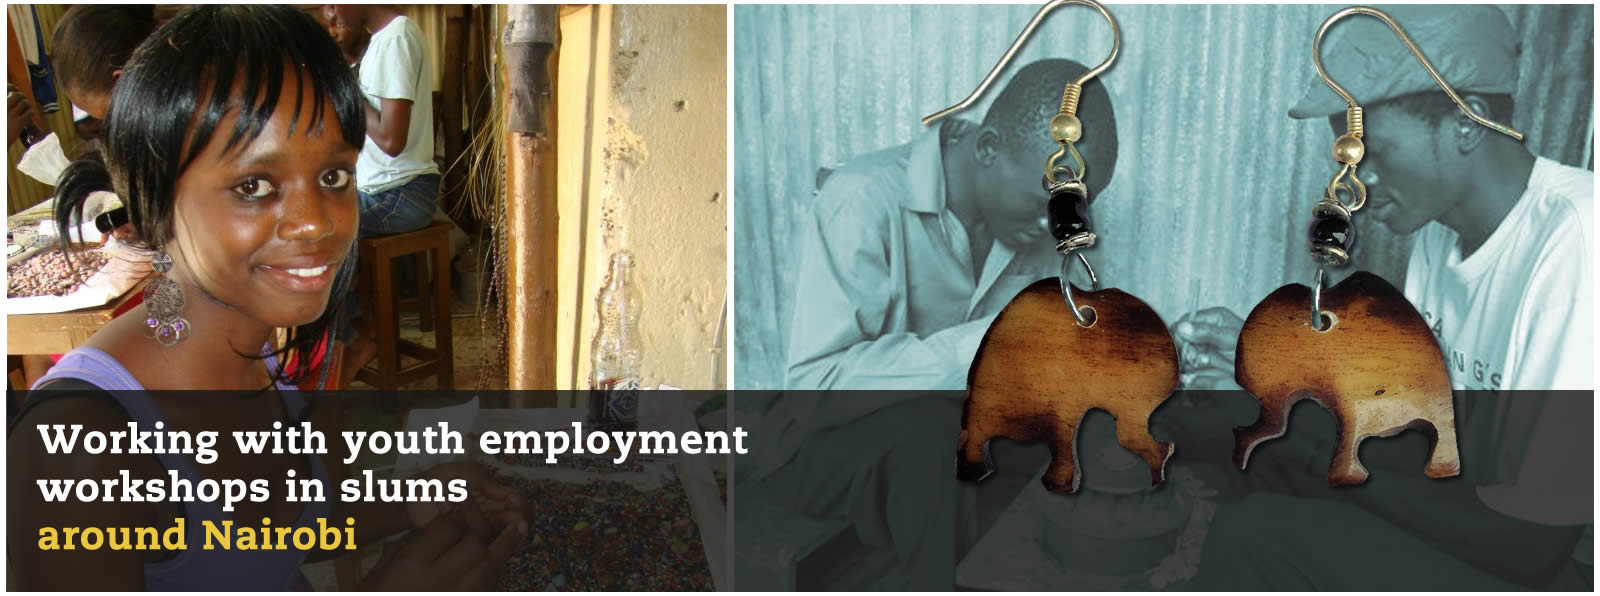 Working with youth employment workshops in slums, Africa